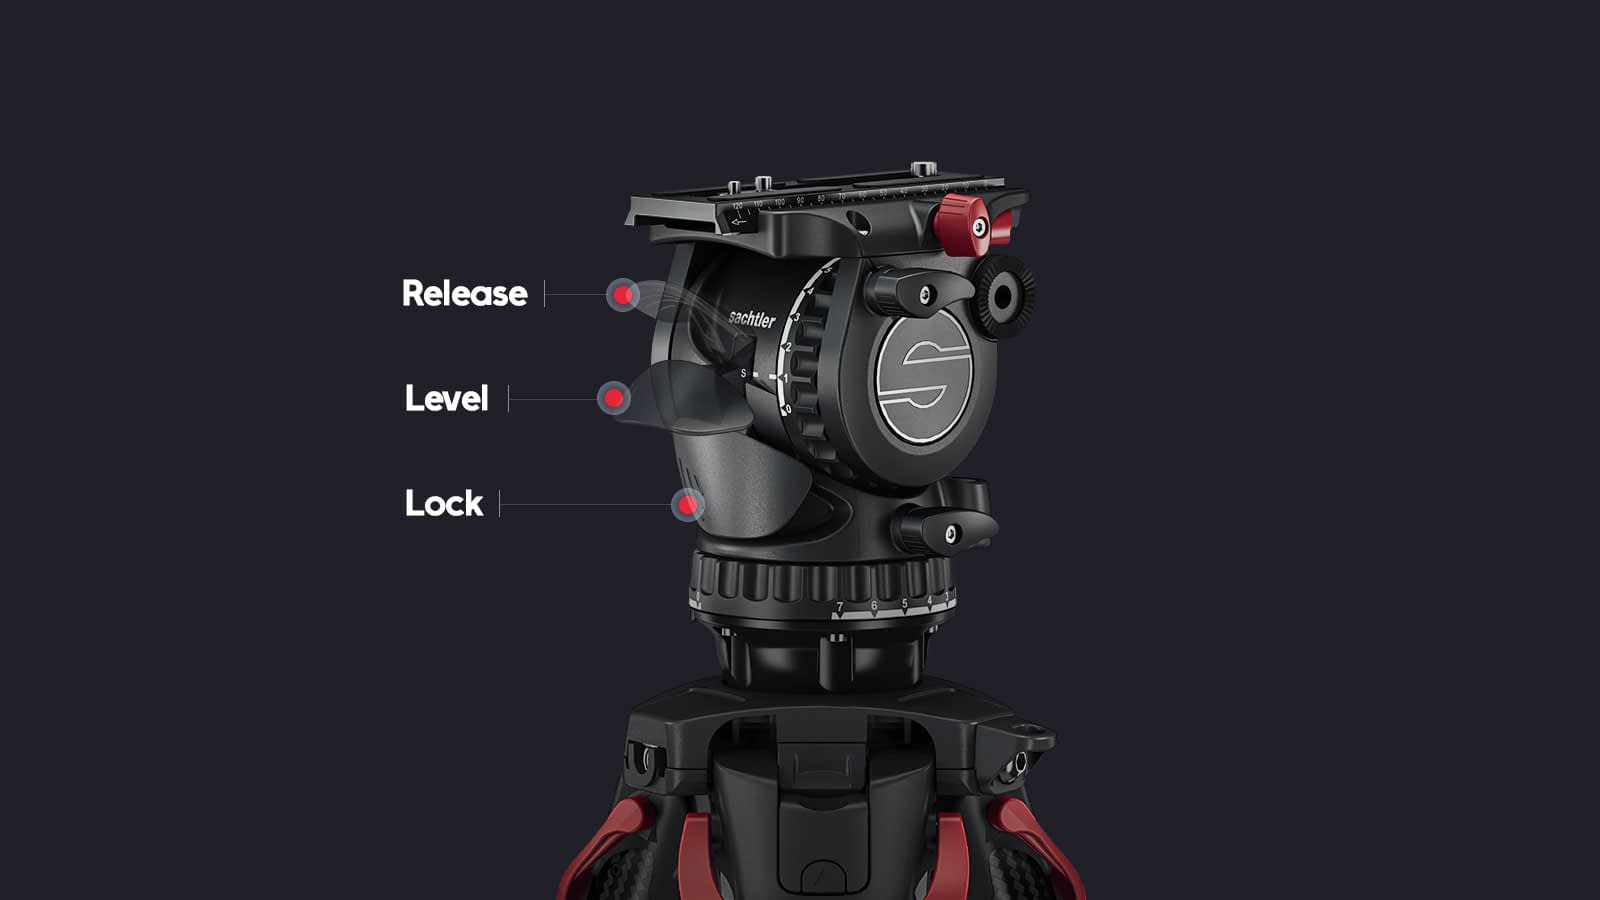 Sachtler Aktiv SpeedLevel Technology